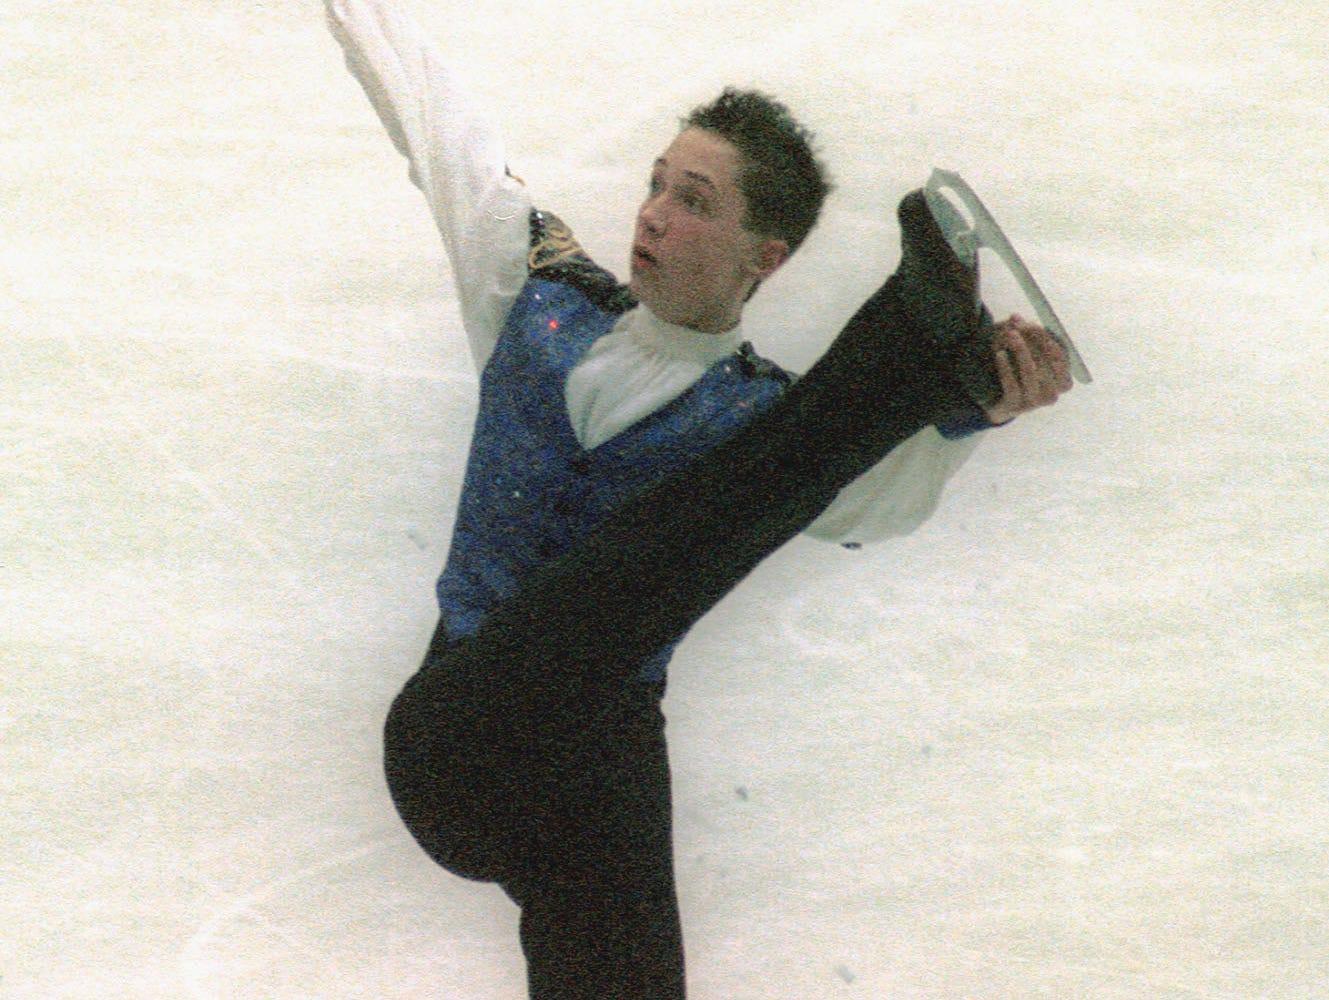 Johnny Weir performs in the men's singles skating event at the World Junior Figure Skating Championships in Sofia, Bulgaria, Thursday, March 1, 2001. Weir won the gold medal.